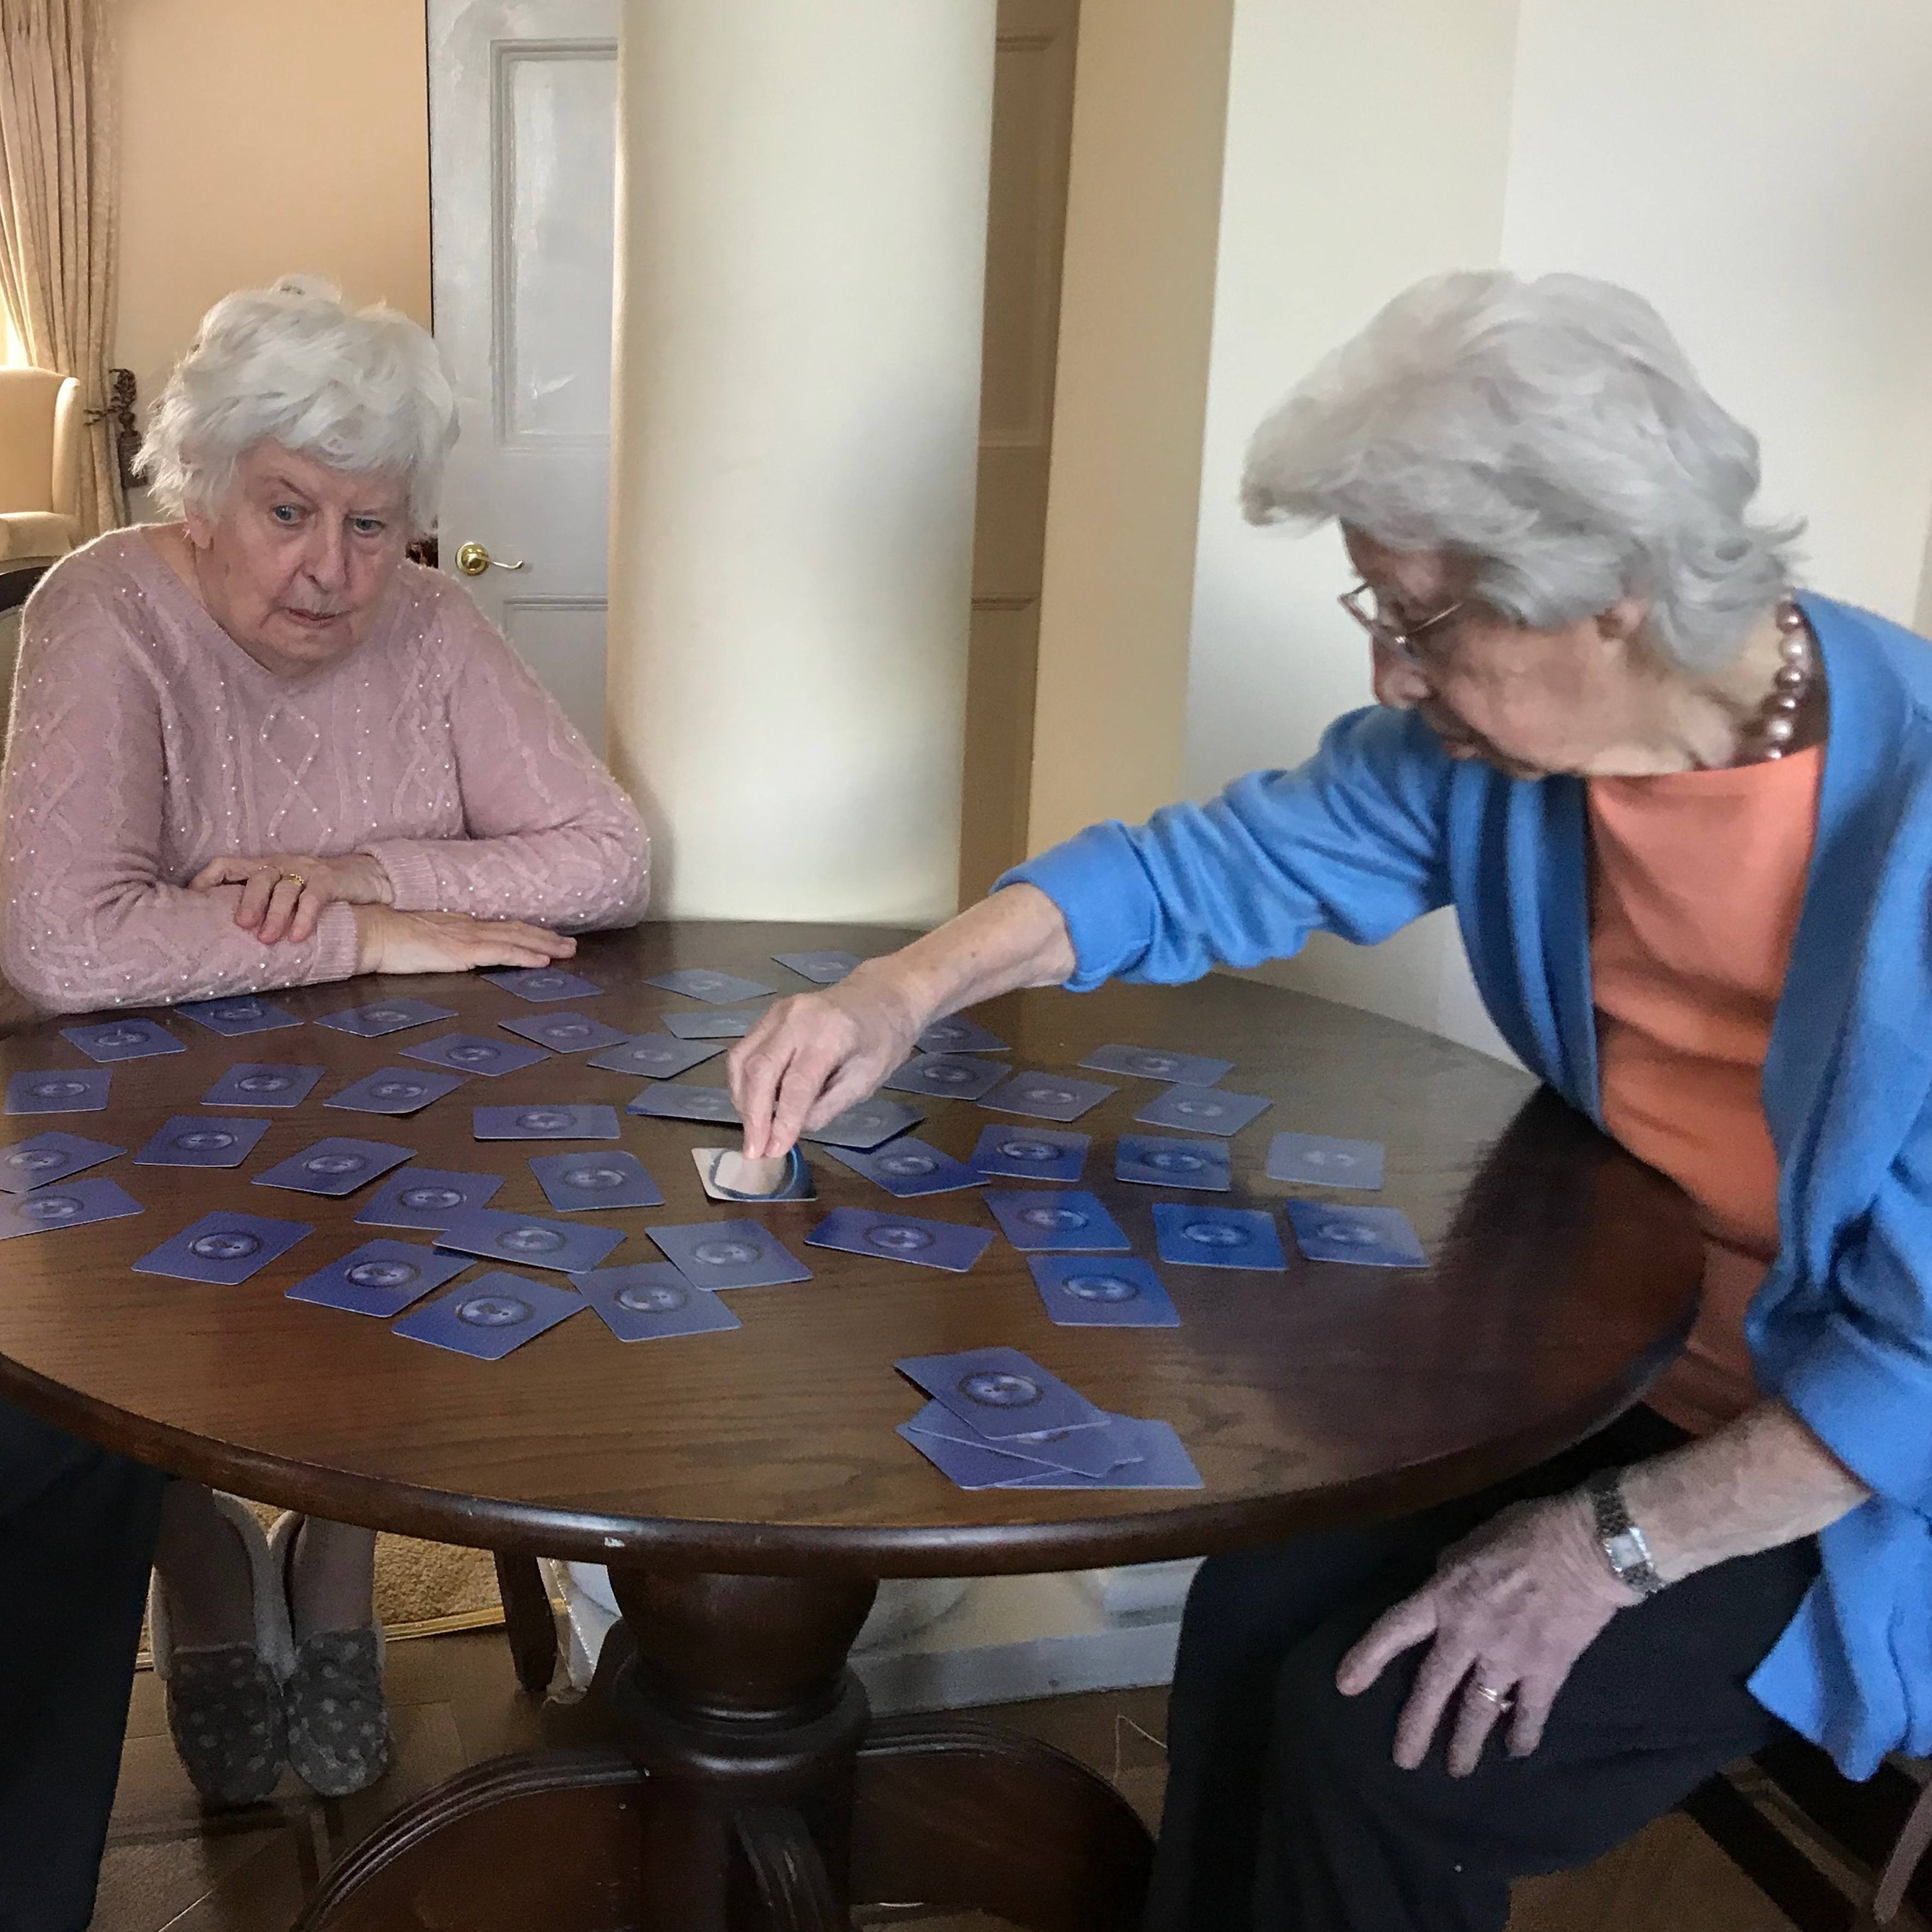 Playing games while the home is closed to outside visitors